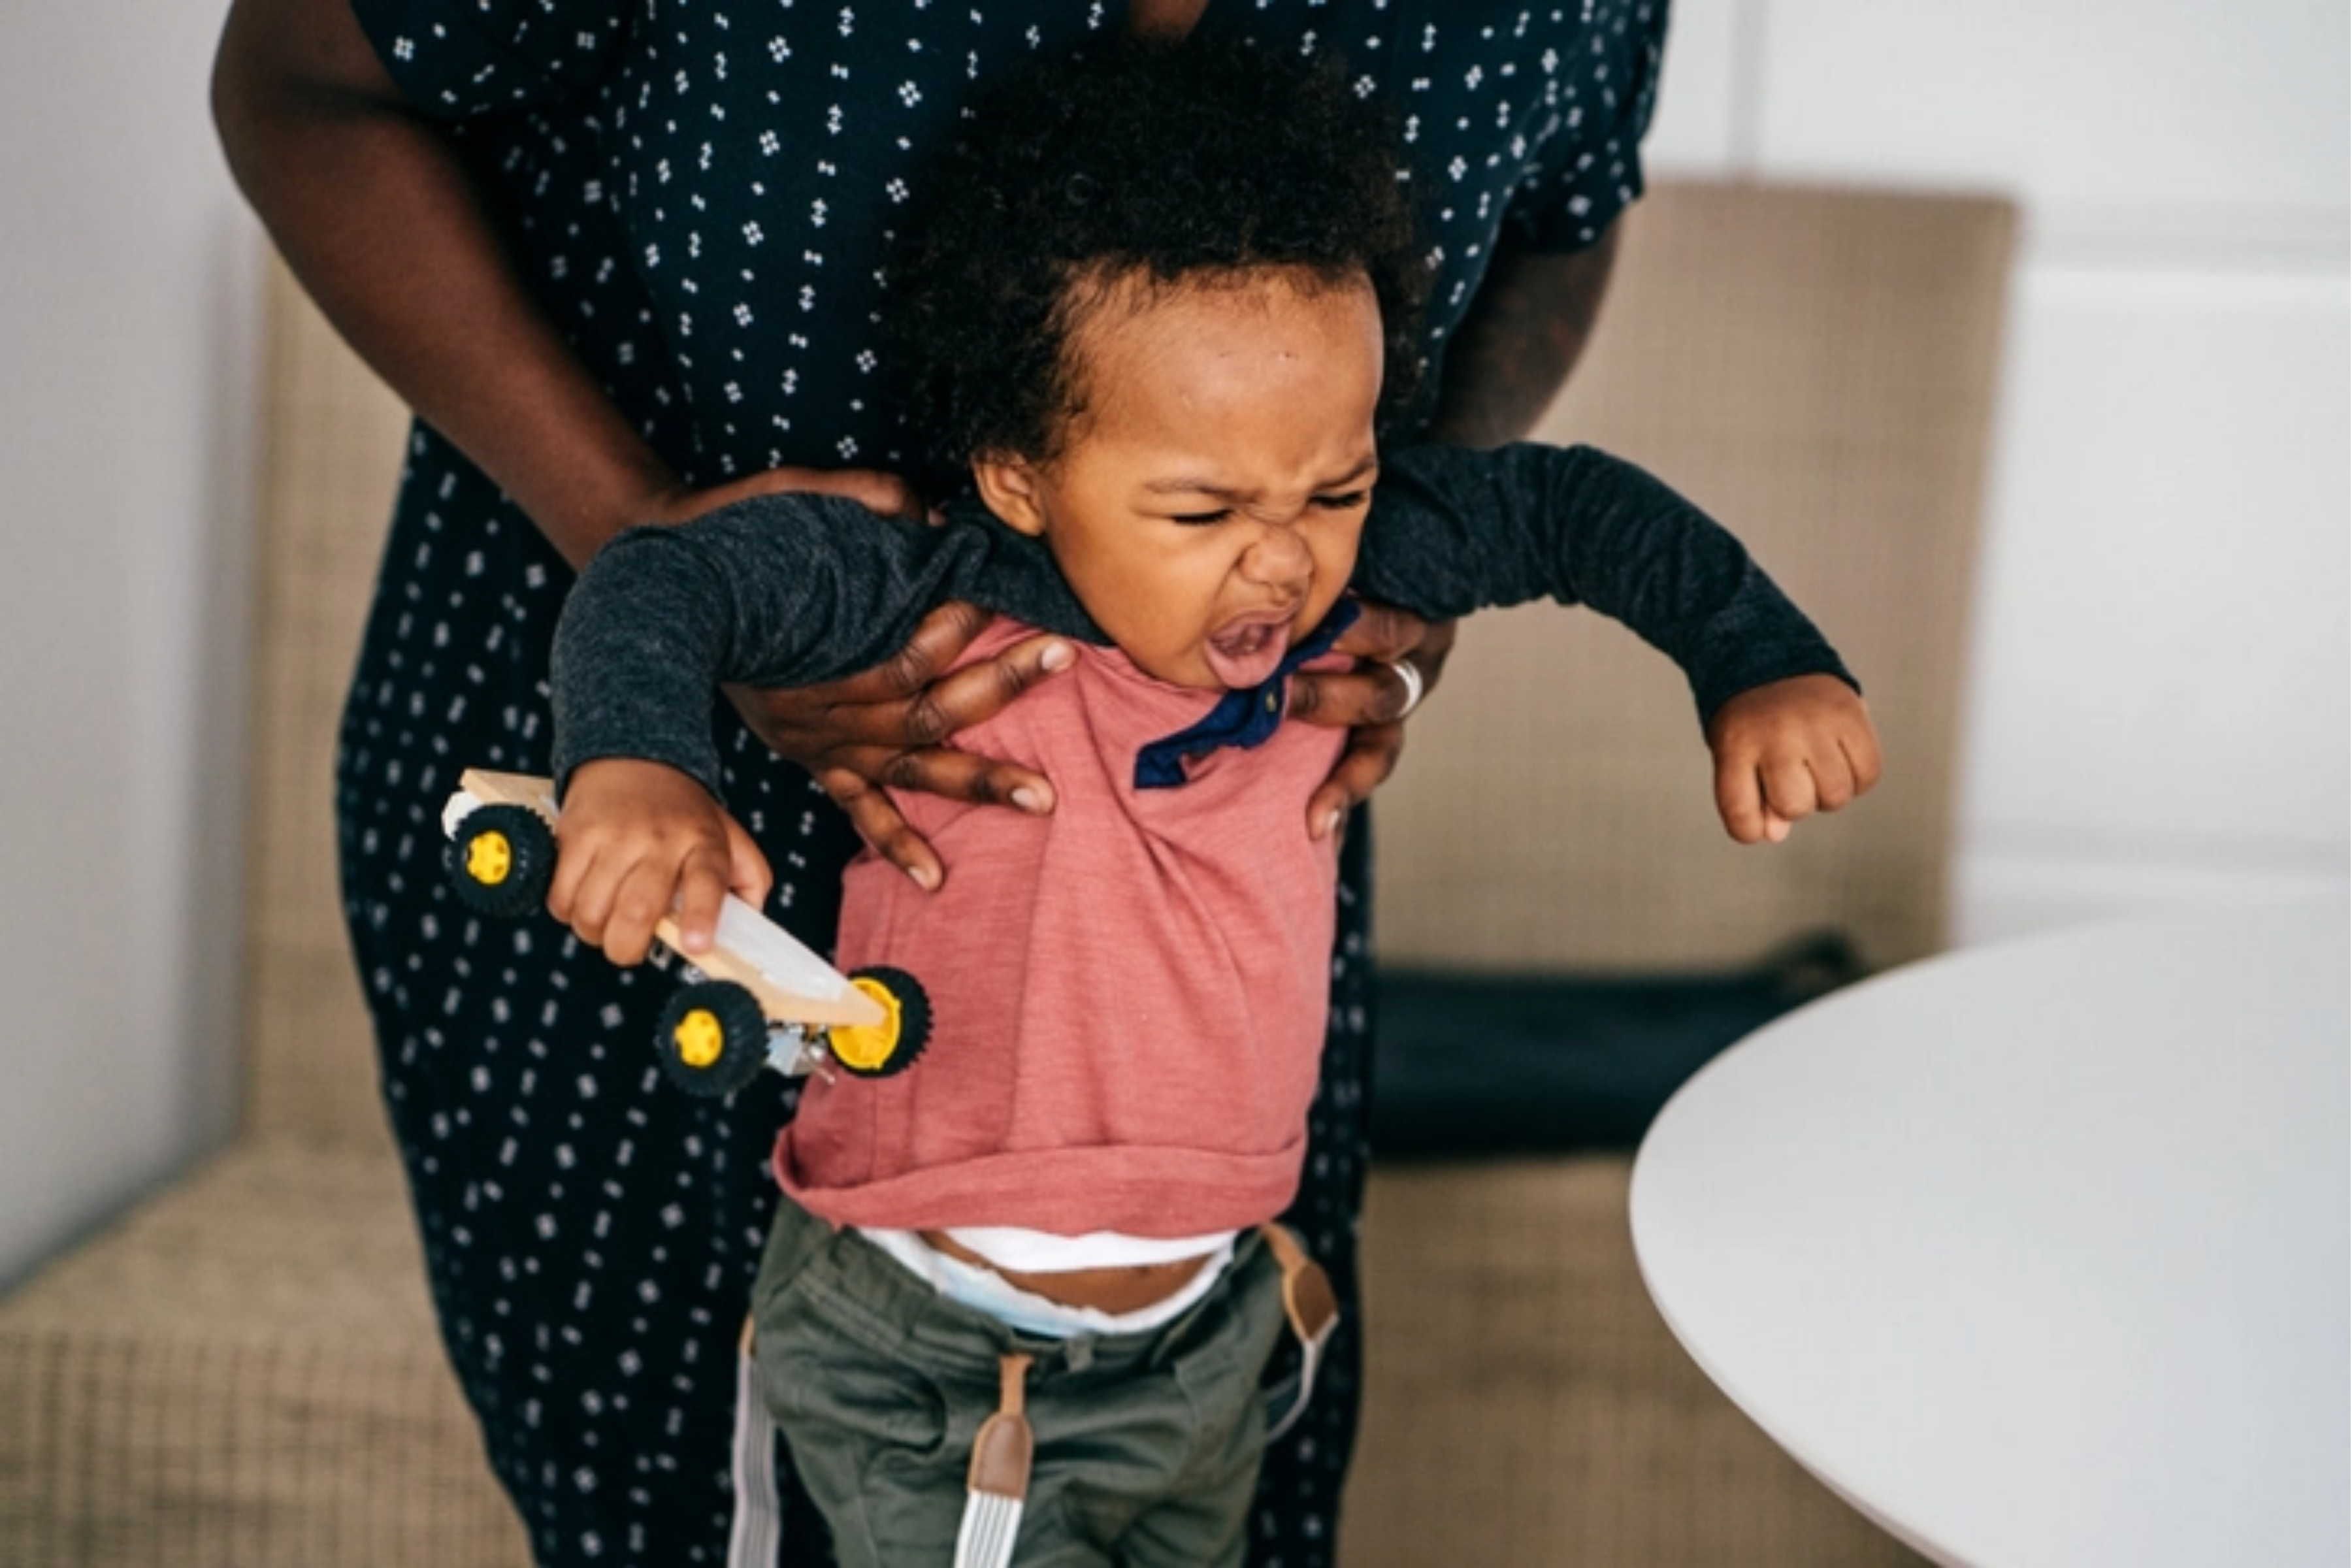 Toddler wearing a pink and navy top throwing a tantrum in the dining room while her parent is holding her under her arms